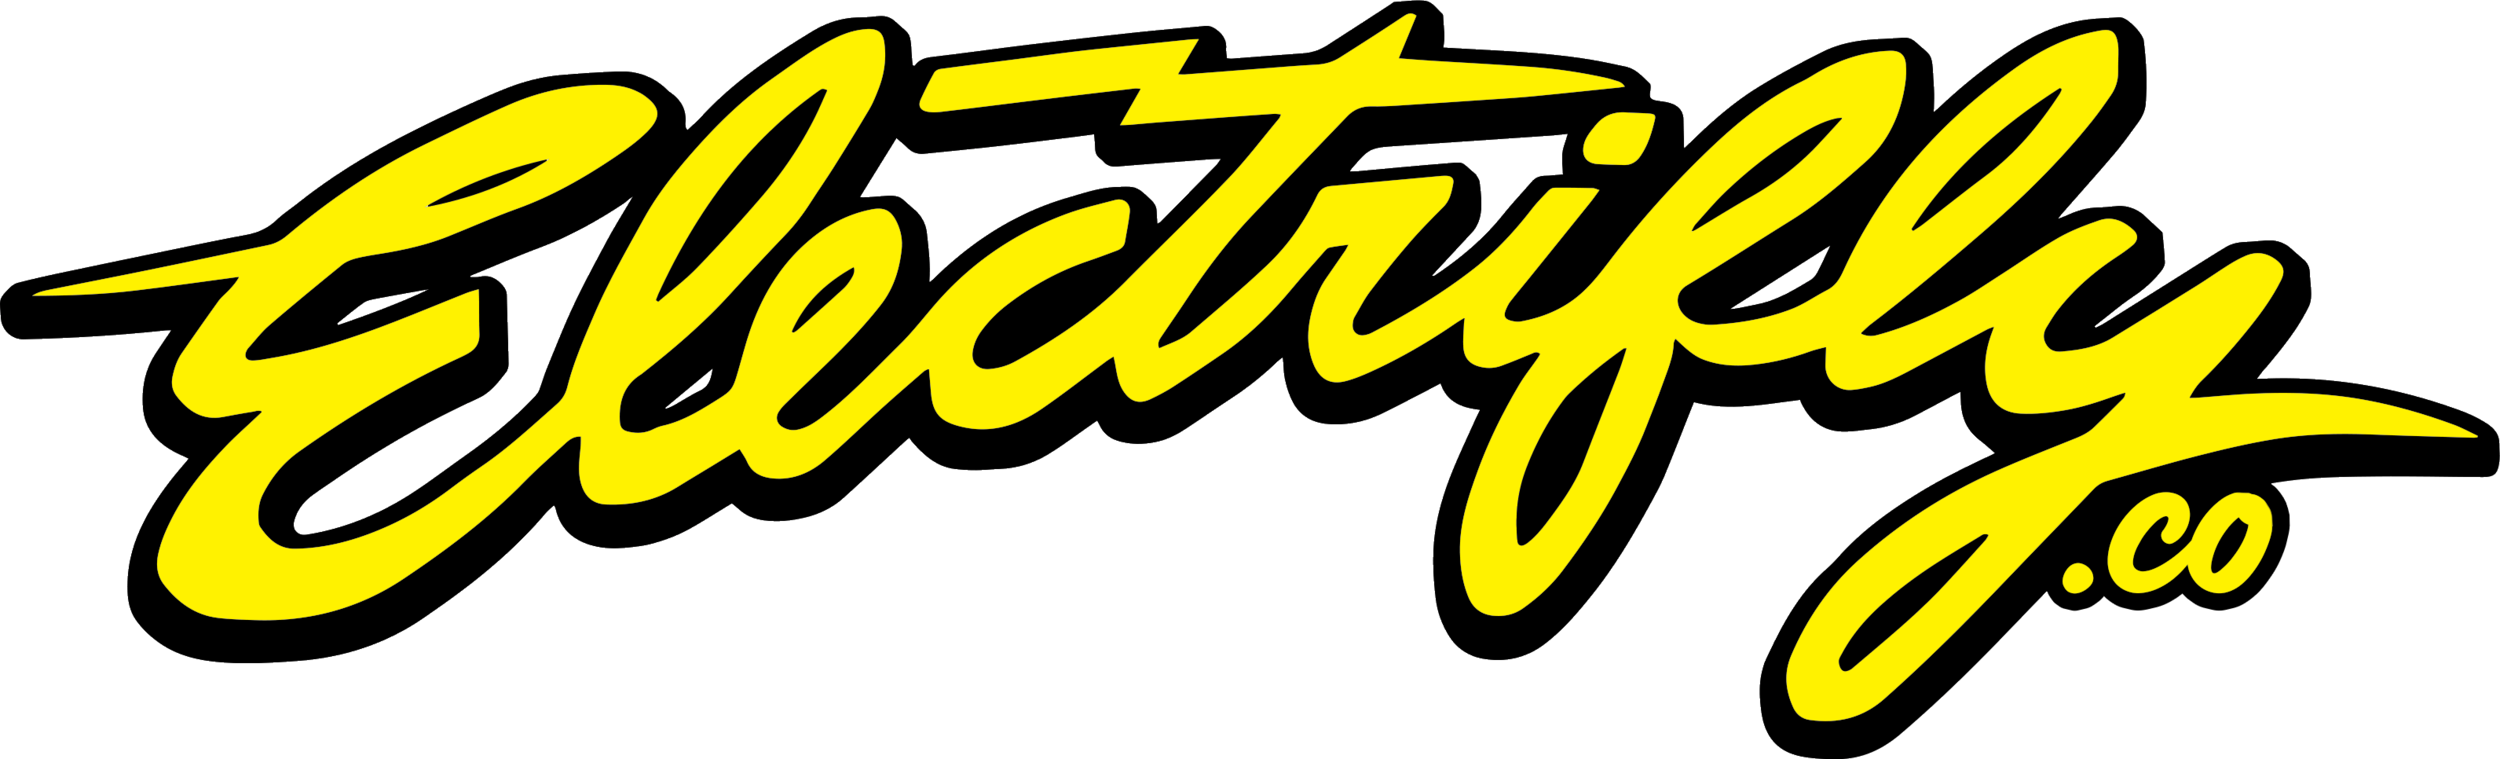 Electrifly Dot Co Curved Font FF.png